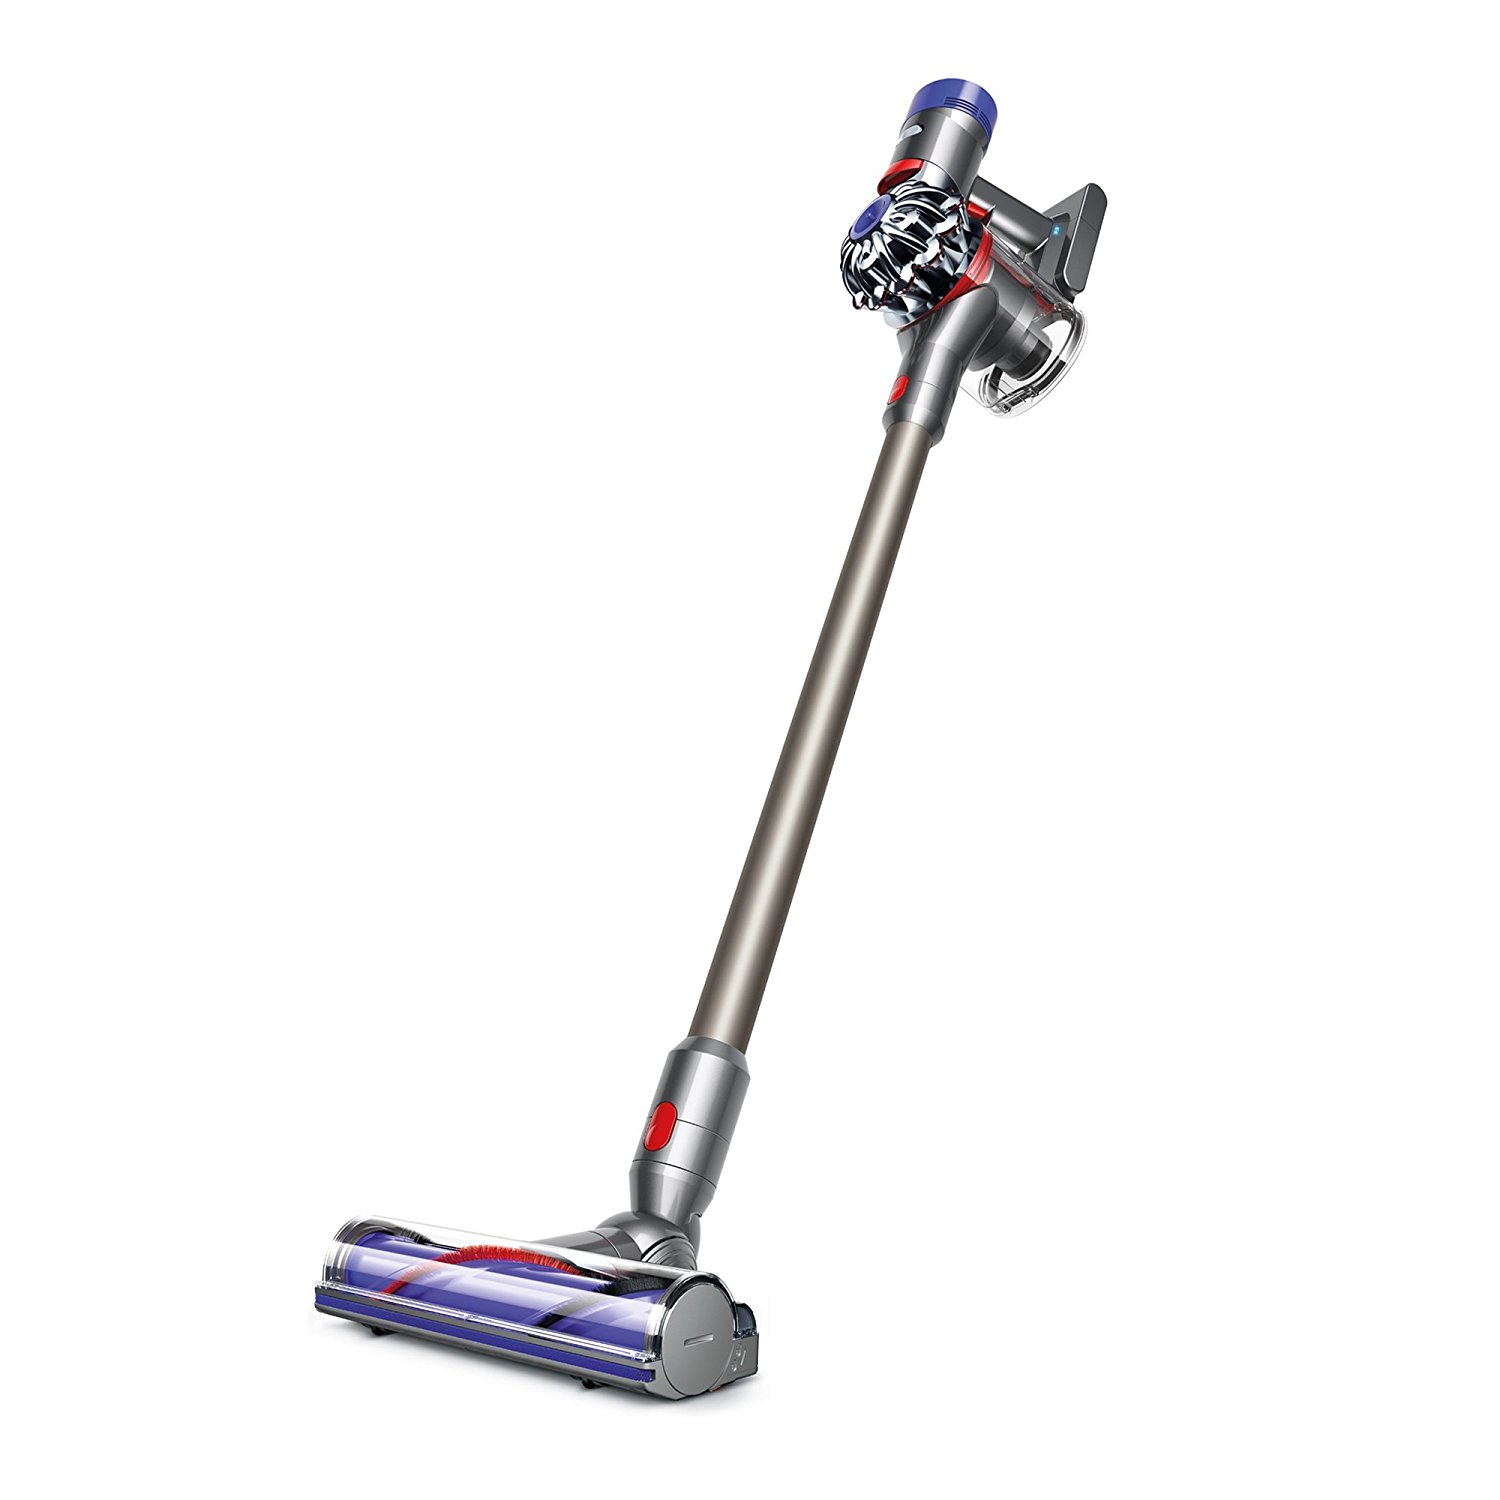 Review of Dyson V8 Animal Cord Free Vacuum